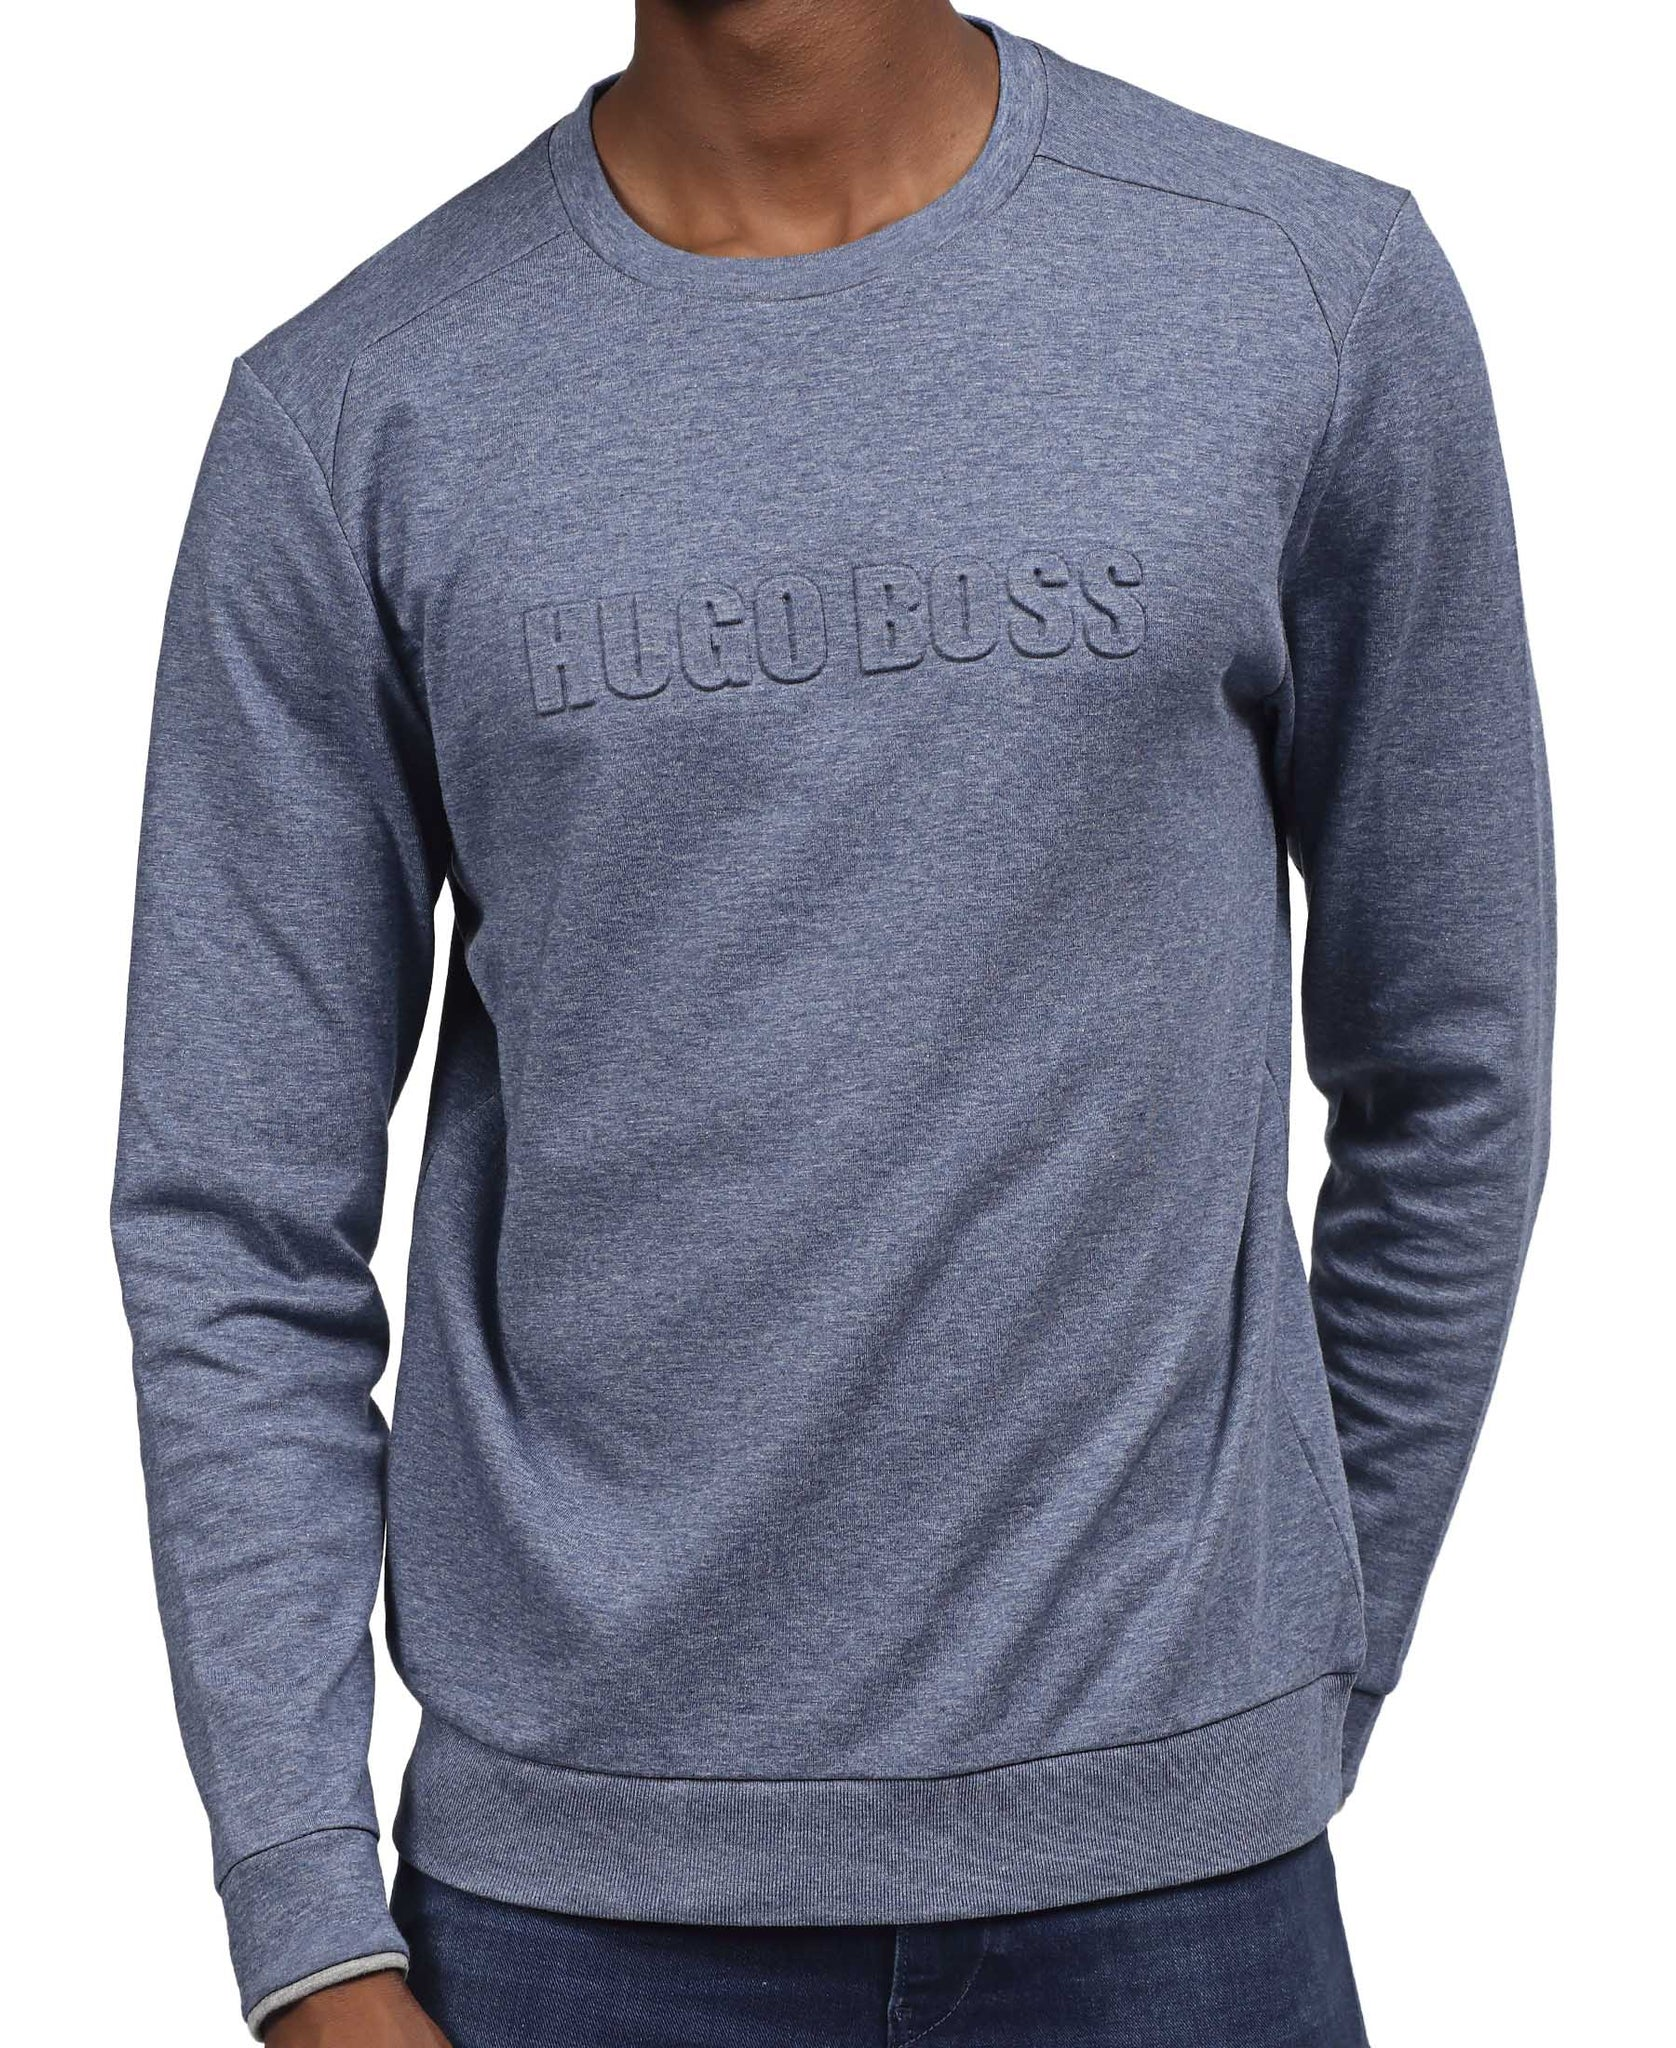 Hugo Boss Sweatshirt - Navy